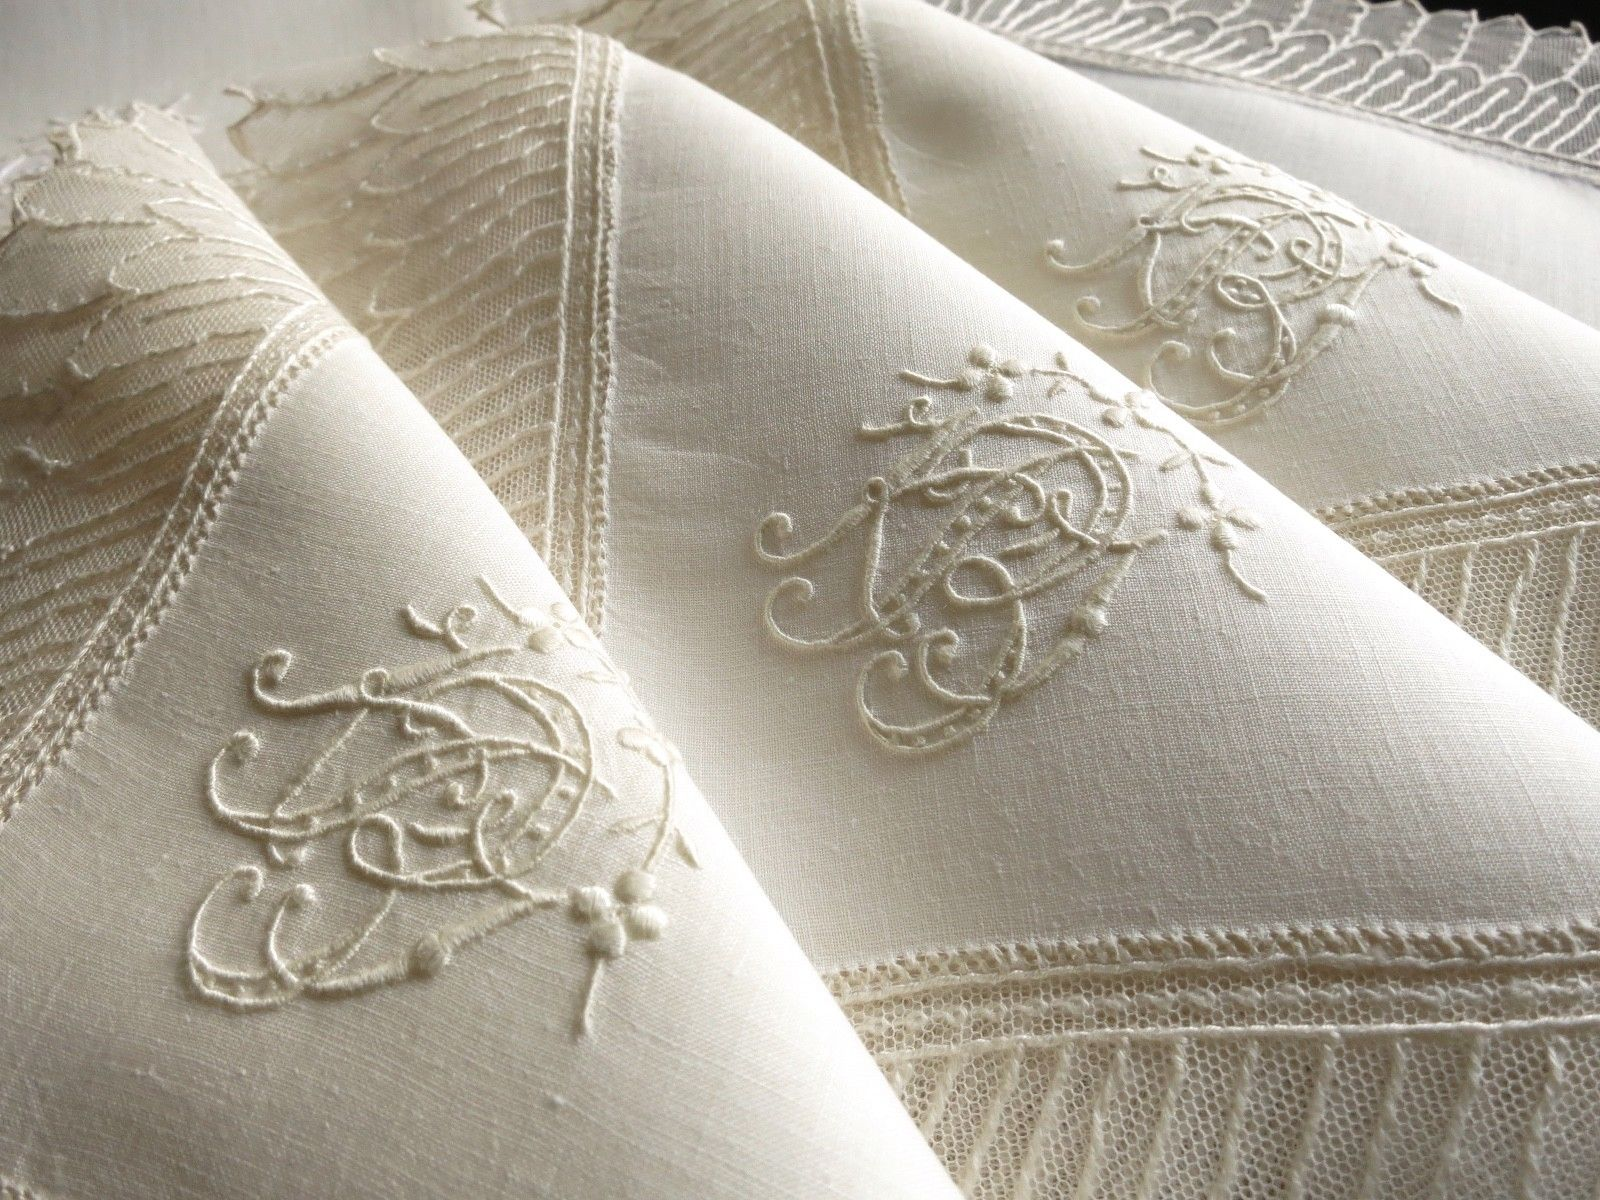 Exquisite Antique Net Lace Linen Napkins Embroidered Monogram Set Things Most Delightful